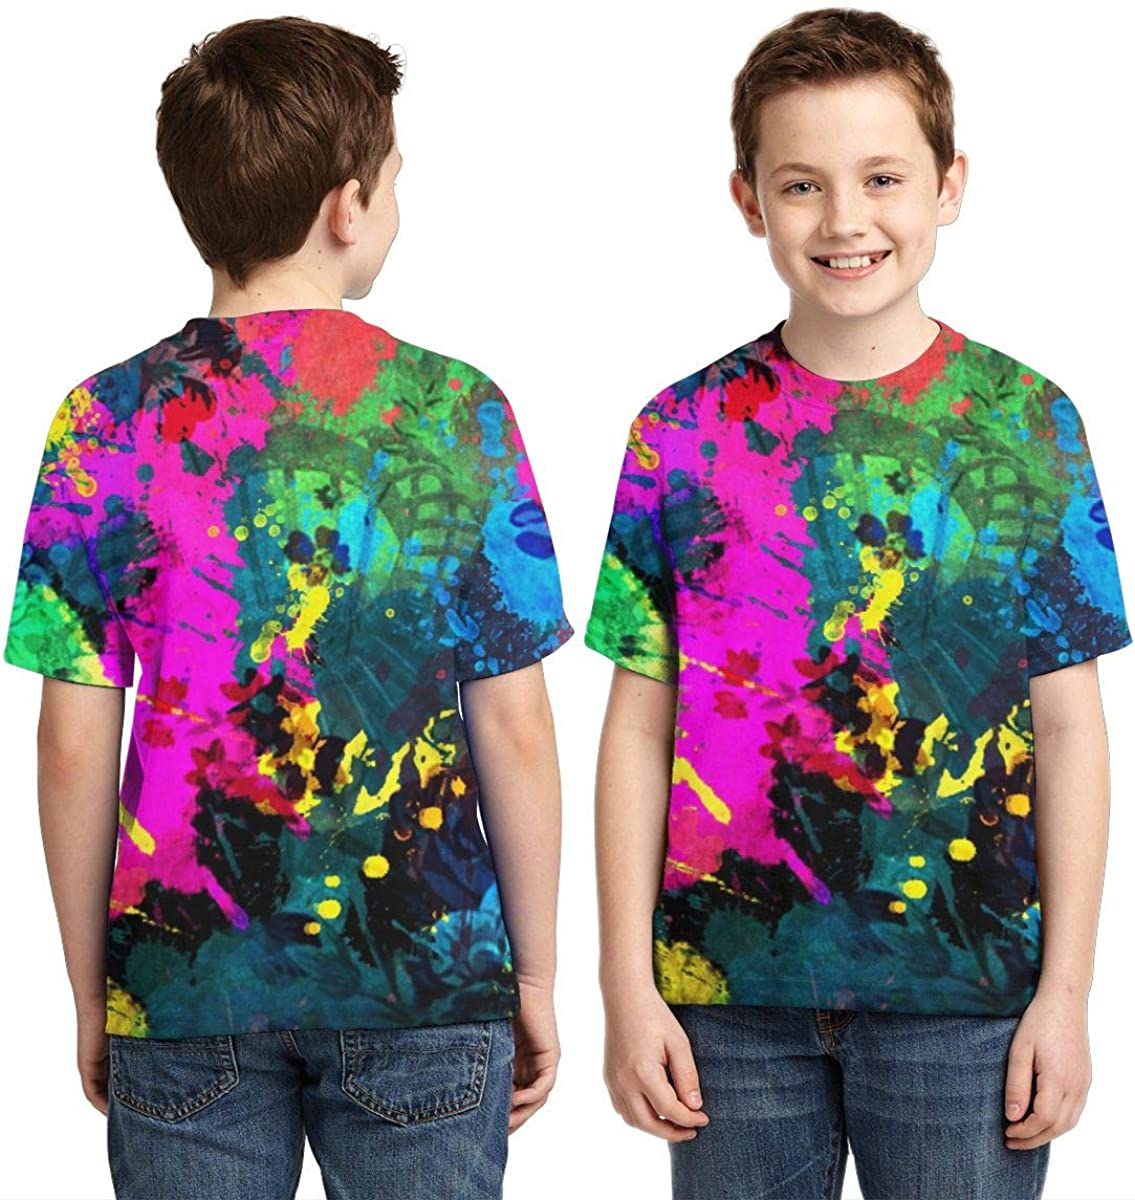 BIAN-64 Youth Colorful Paint Splatter Casual 3D Pattern Printed Short Sleeve T-Shirts Top Tees